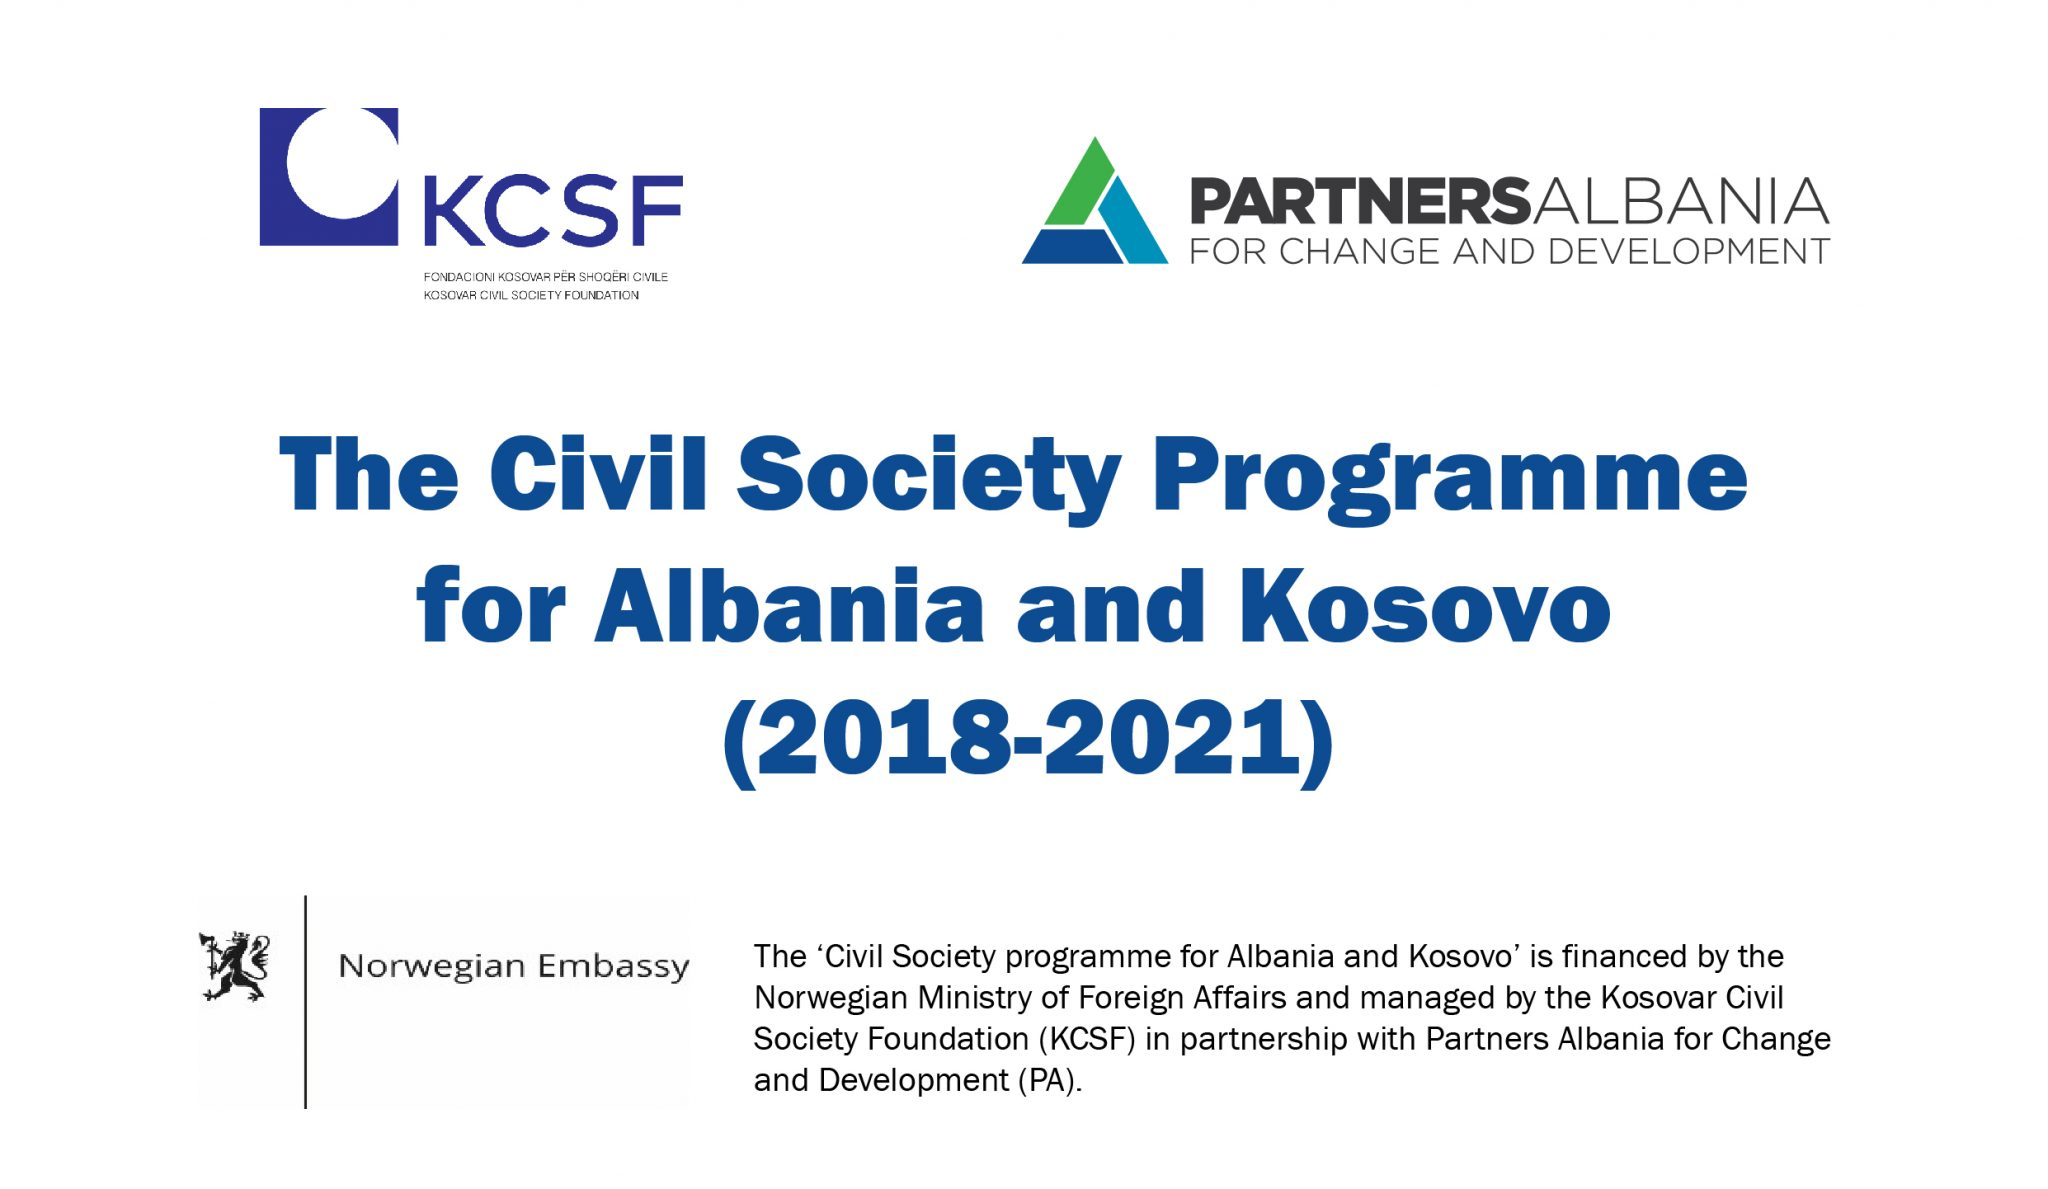 Civil Society Programme for Albania and Kosovo Launched by KCSF and PA